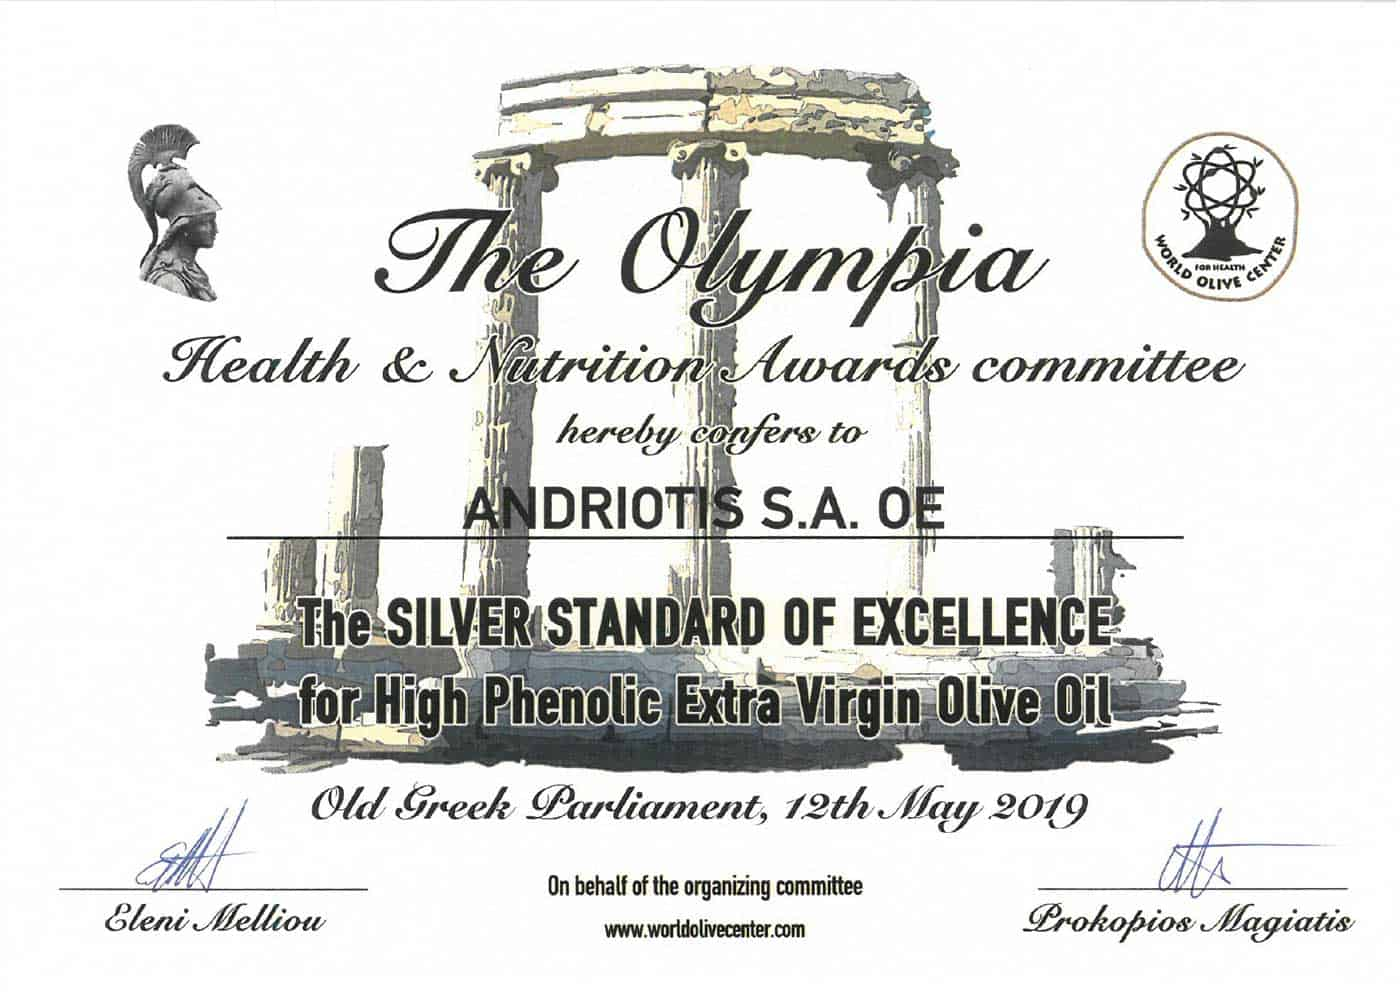 2019-the-olympia-health-and-nutrition-awards-committee-silver-standard-of-excellence